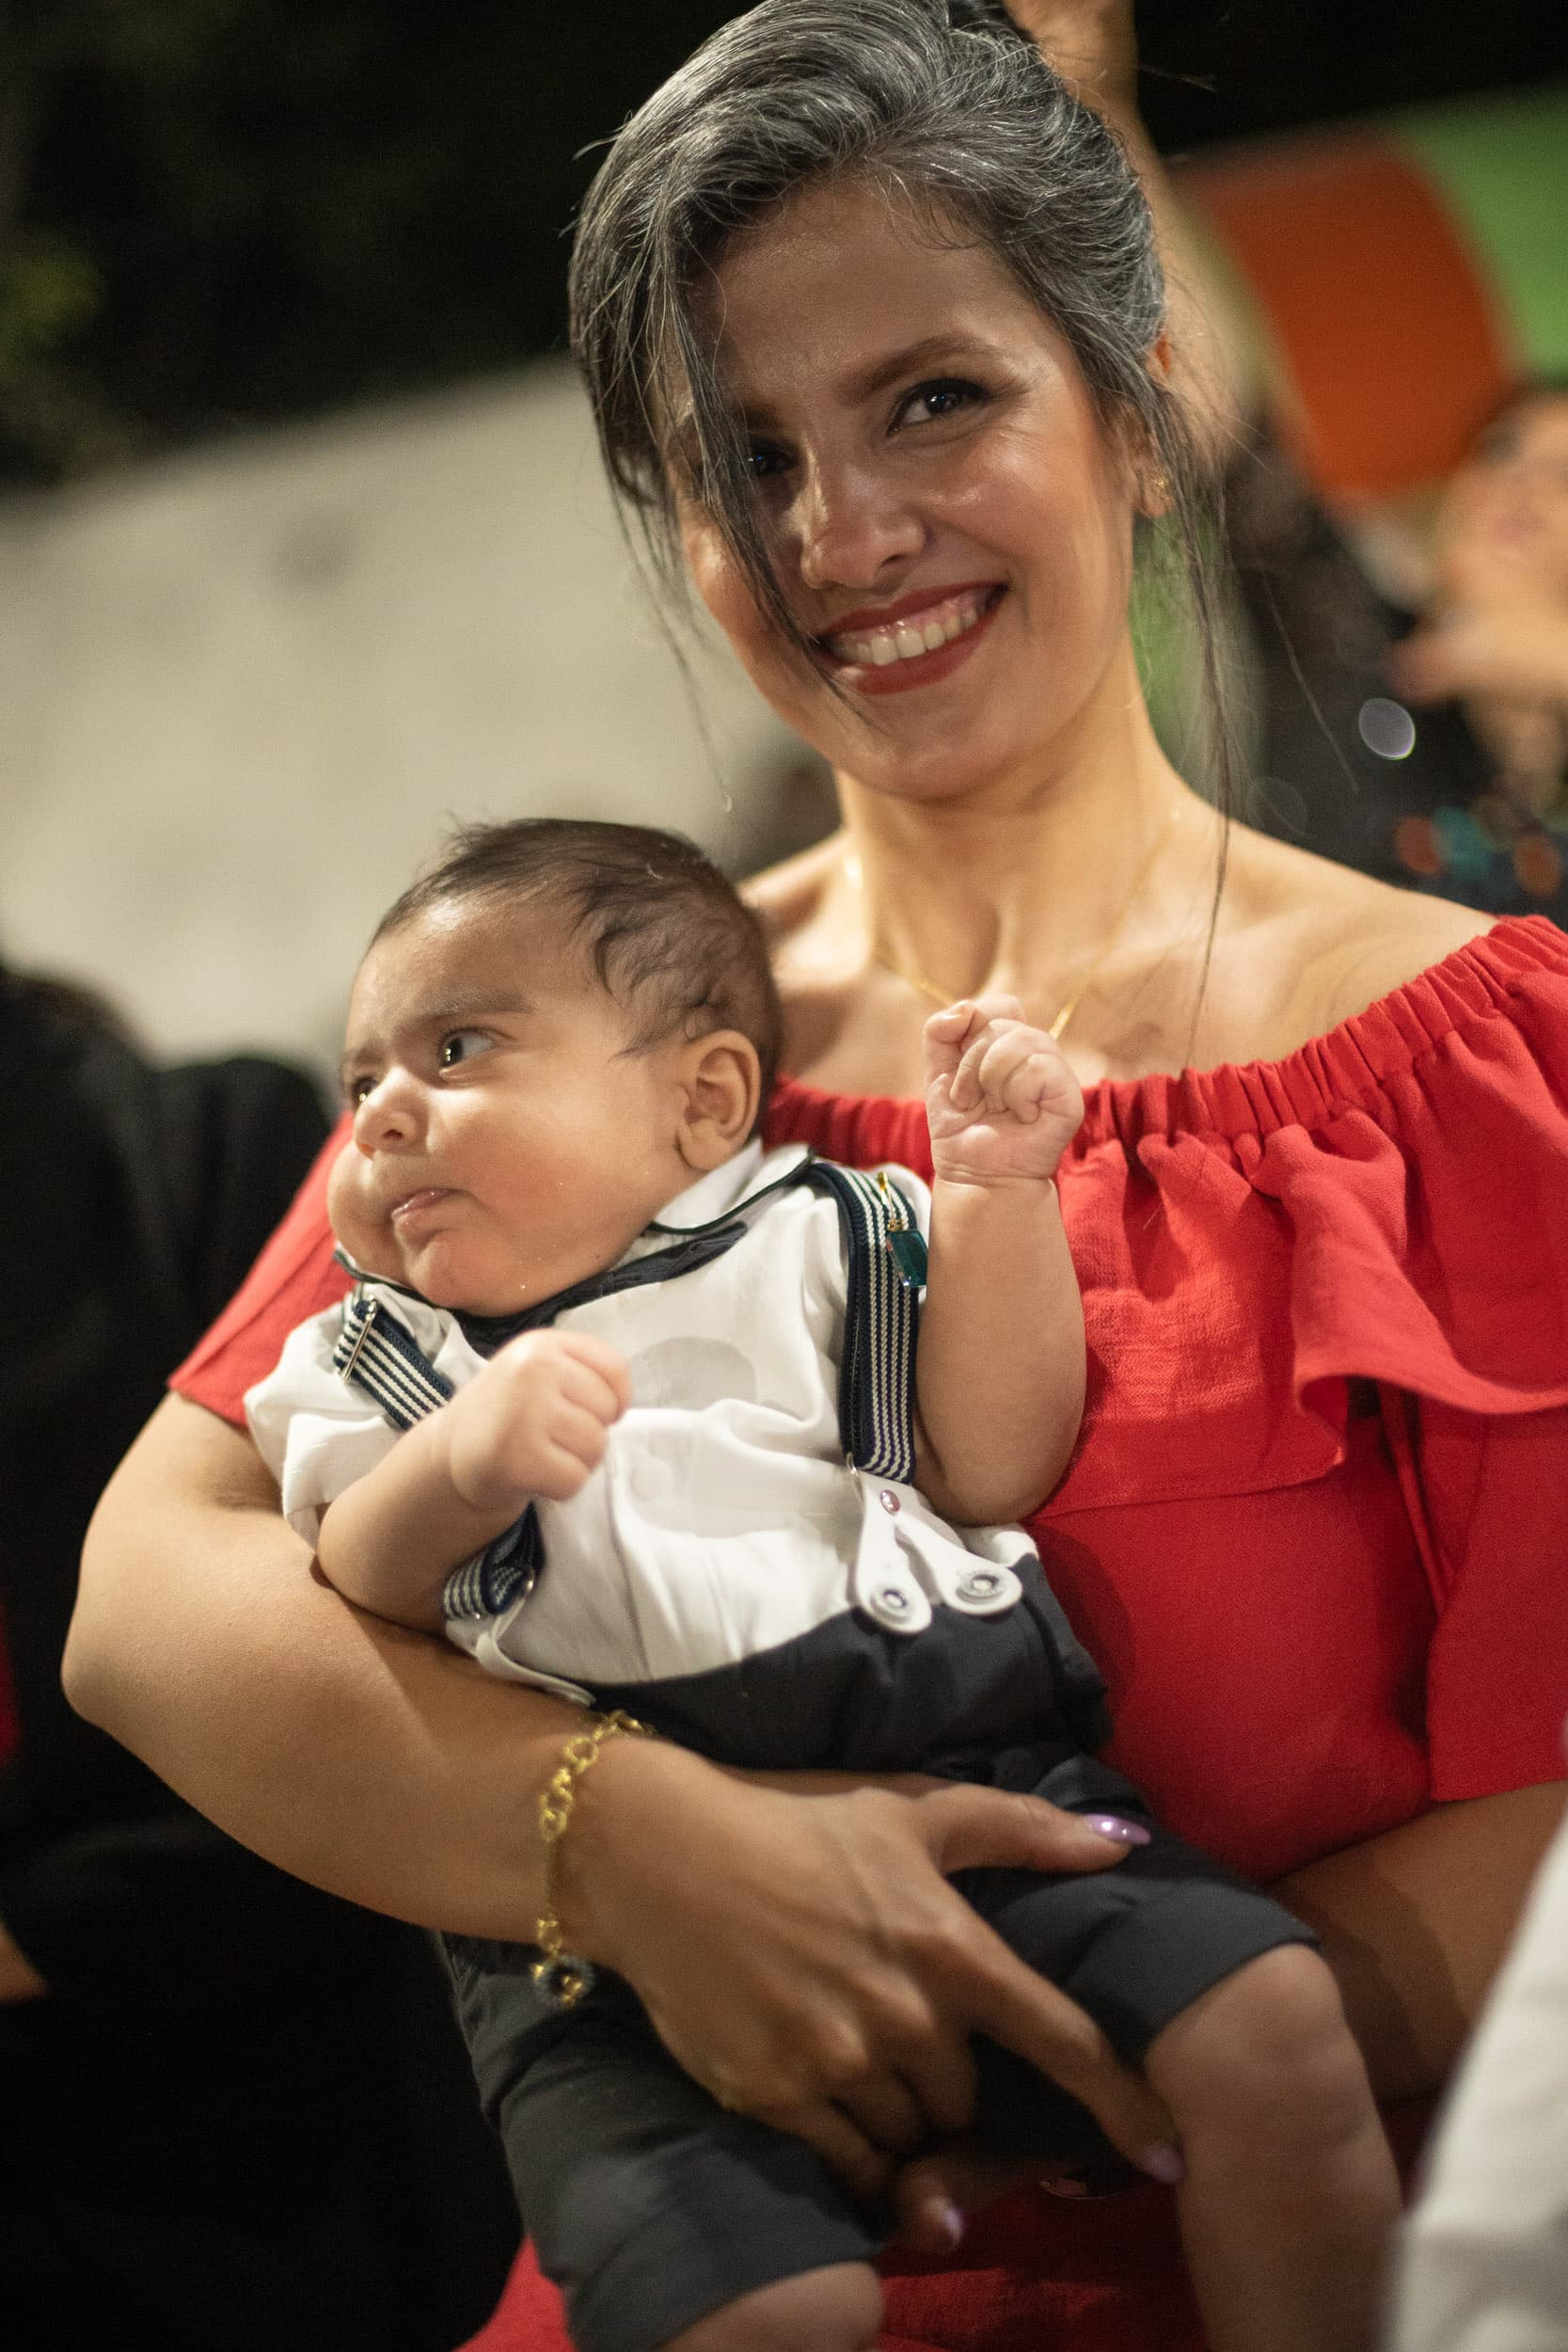 Iranian woman with baby